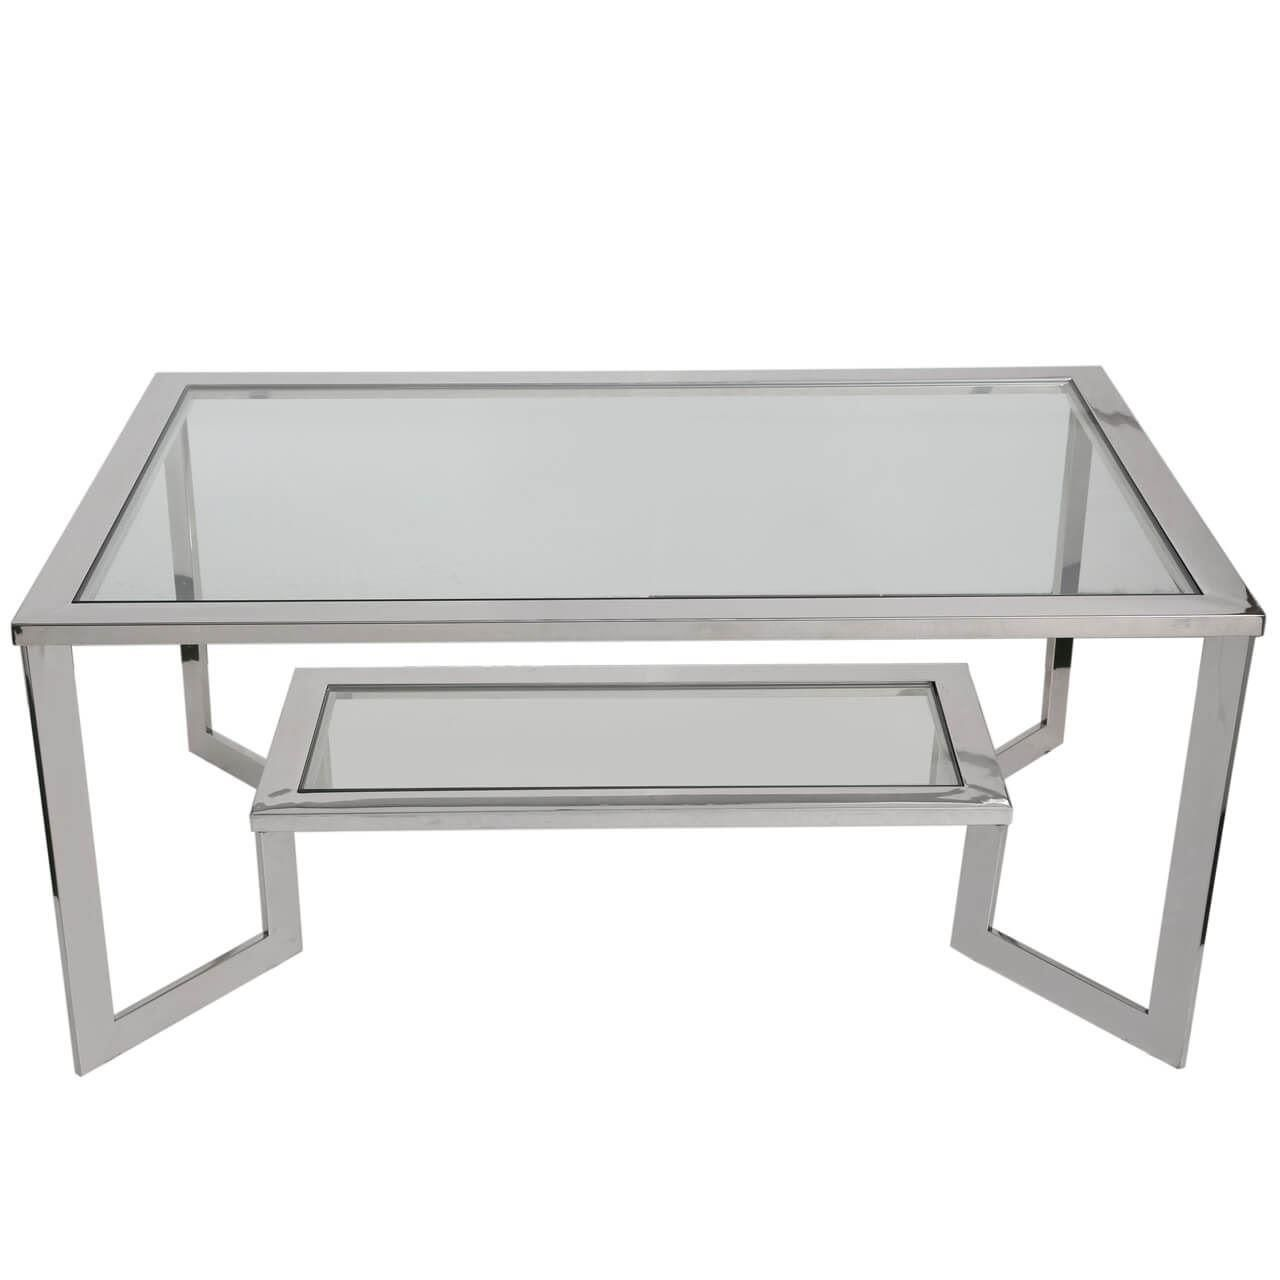 Enjoyable Chrome Coffee Table Gmtry Best Dining Table And Chair Ideas Images Gmtryco